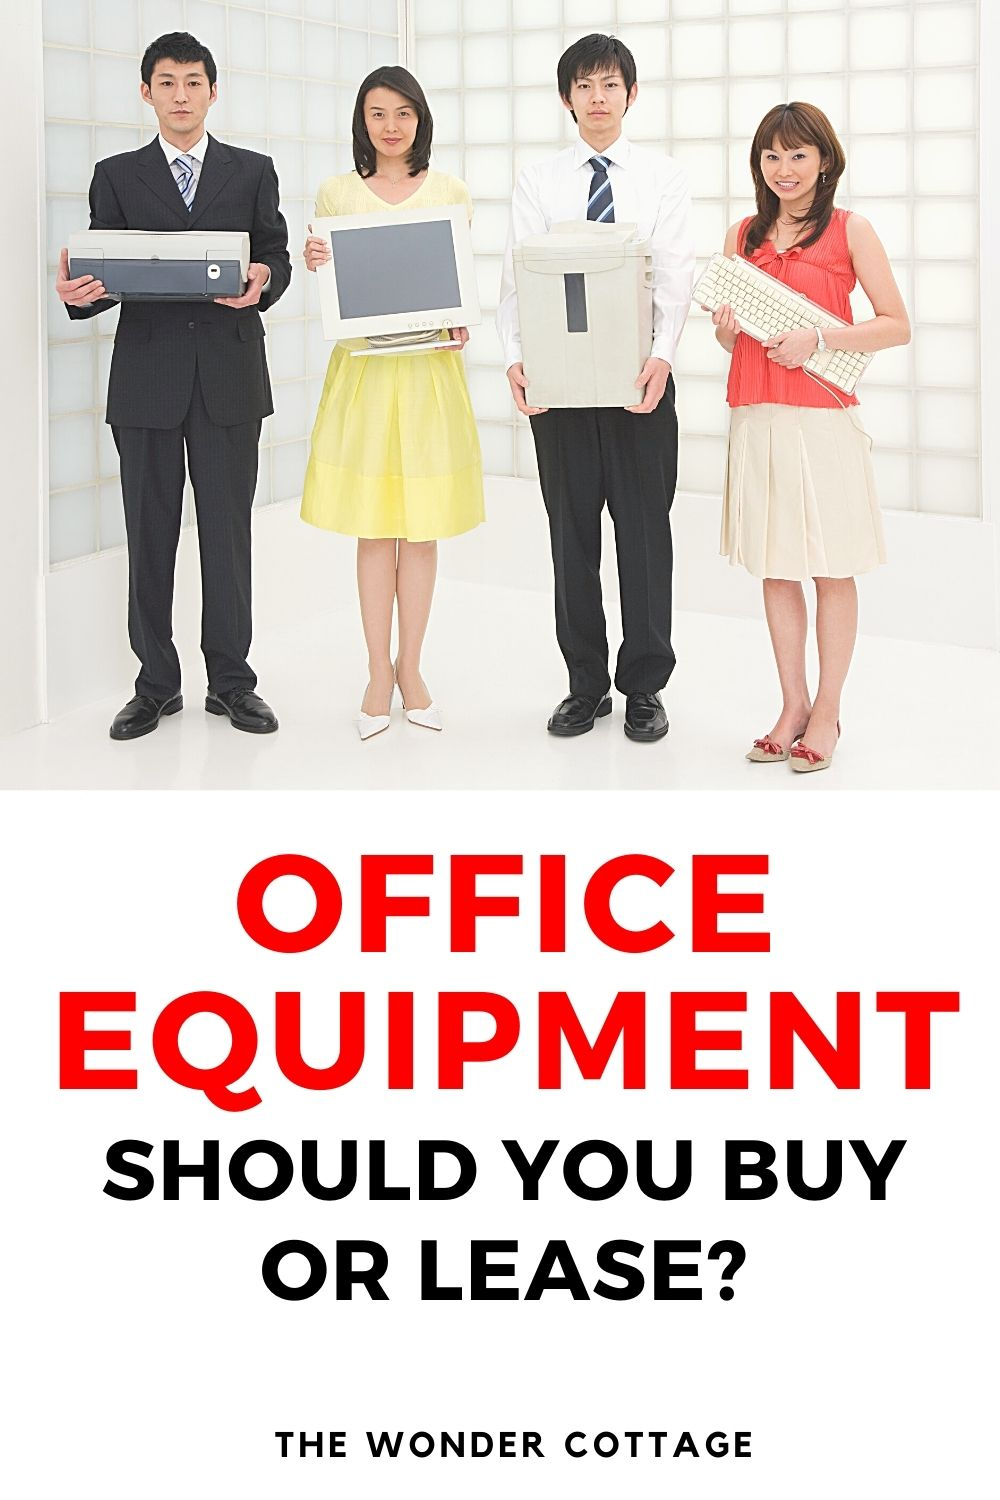 Office equipment? should you buy or lease